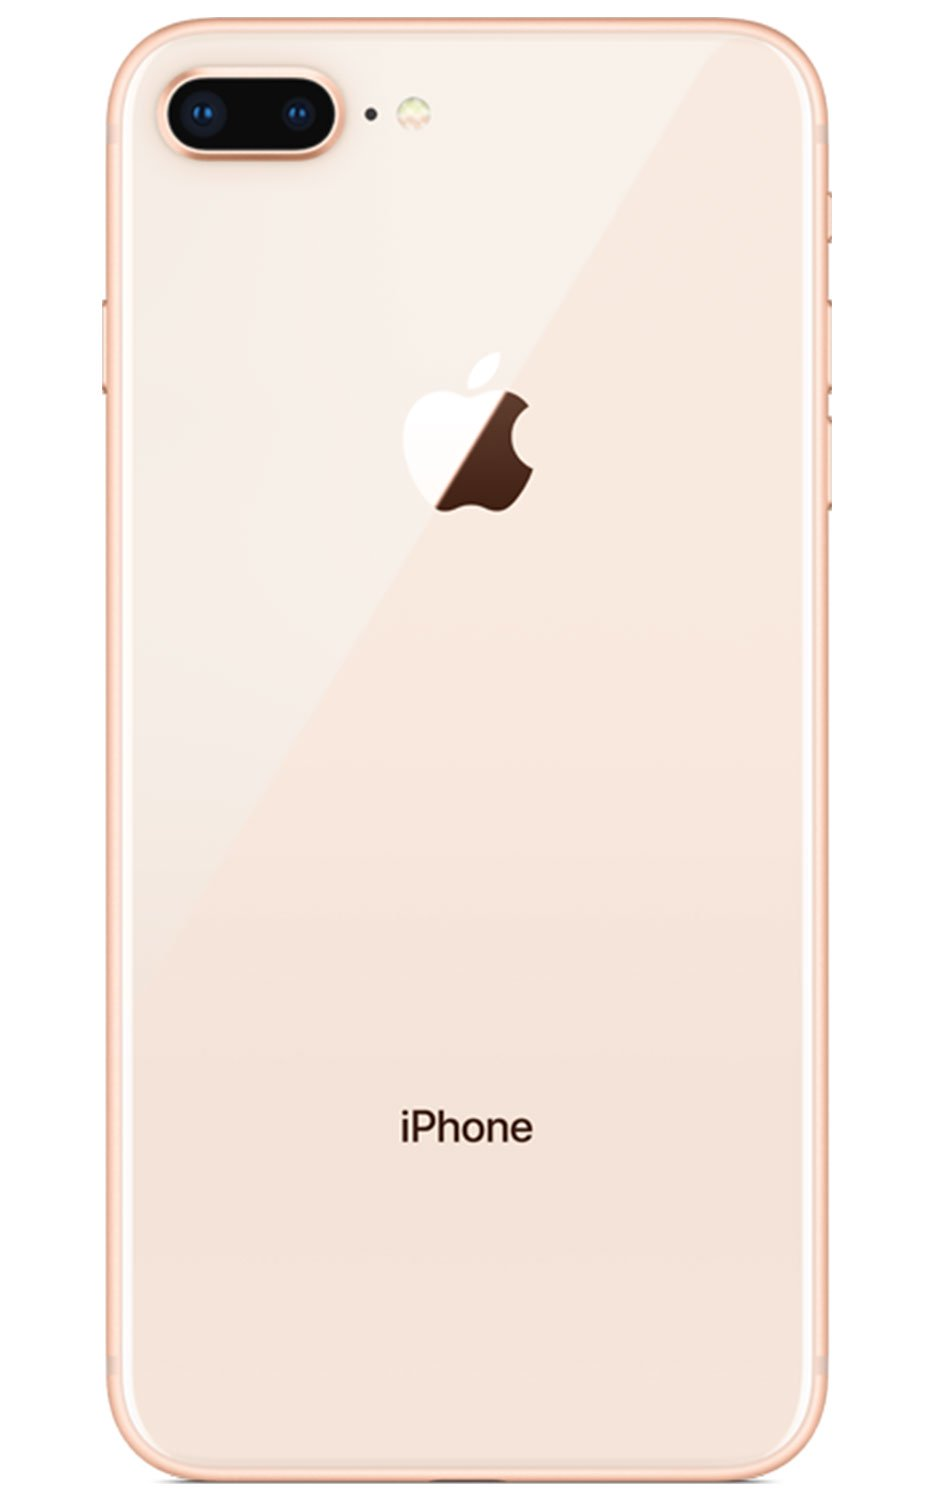 Phóng lớn hình - 26062018/News/2062621619-apple-iphone8plus-gold-2-3x.jpg